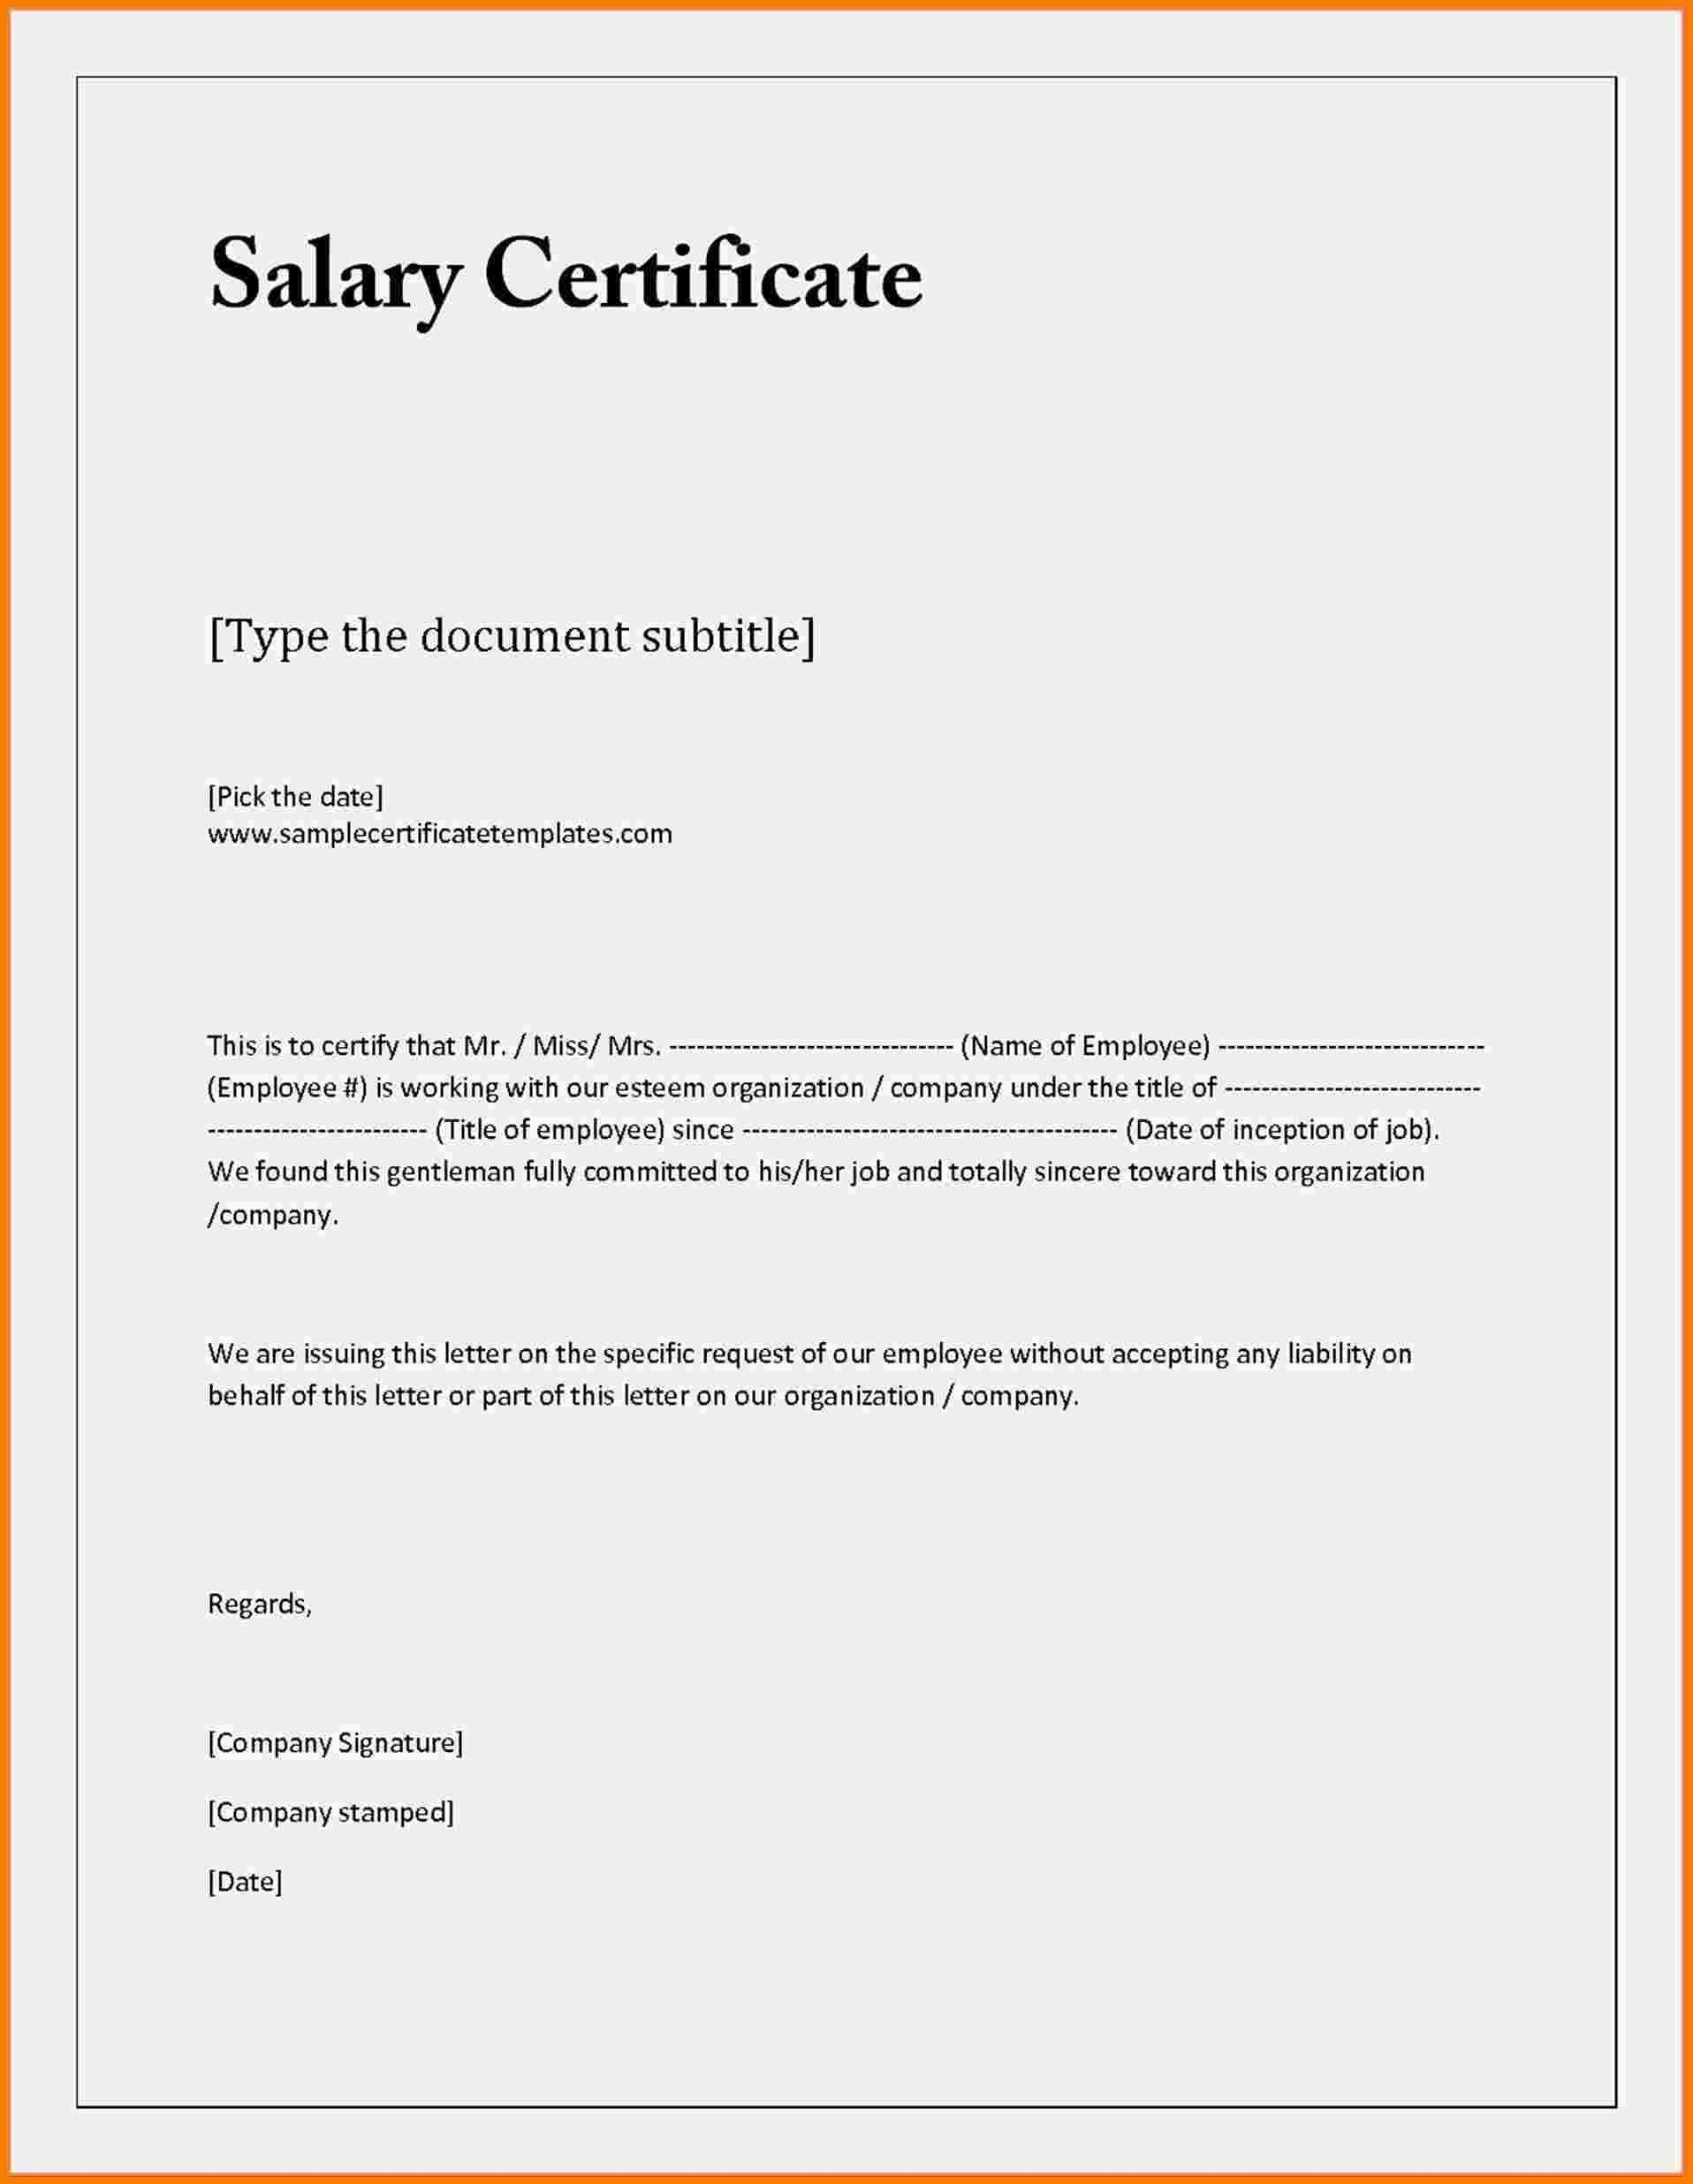 Certificate Of Employment Template Word  Certificatetemplateword In Employee Certificate Of Service Template